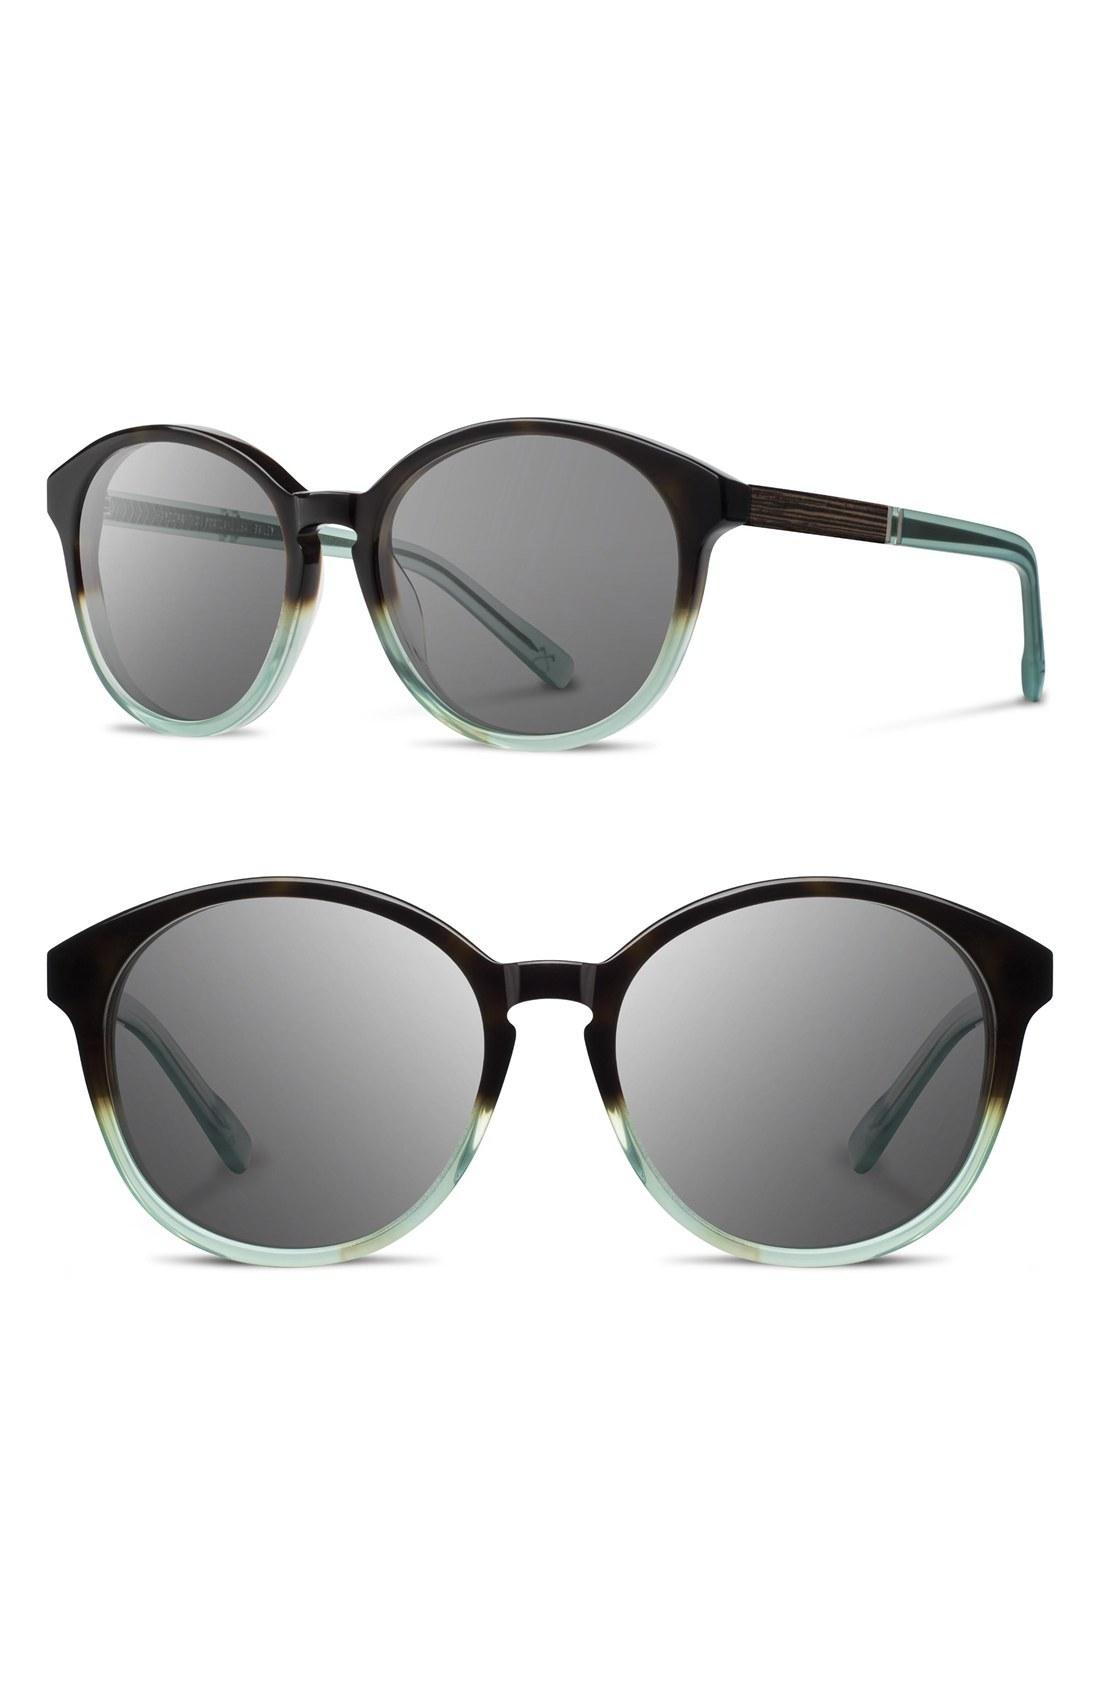 be1a9860239 Polarized Carl Zeiss lenses complete the Portland-made package. Style Name   Shwood  Bailey  53Mm Polarized Sunglasses. Style Number  5012301.